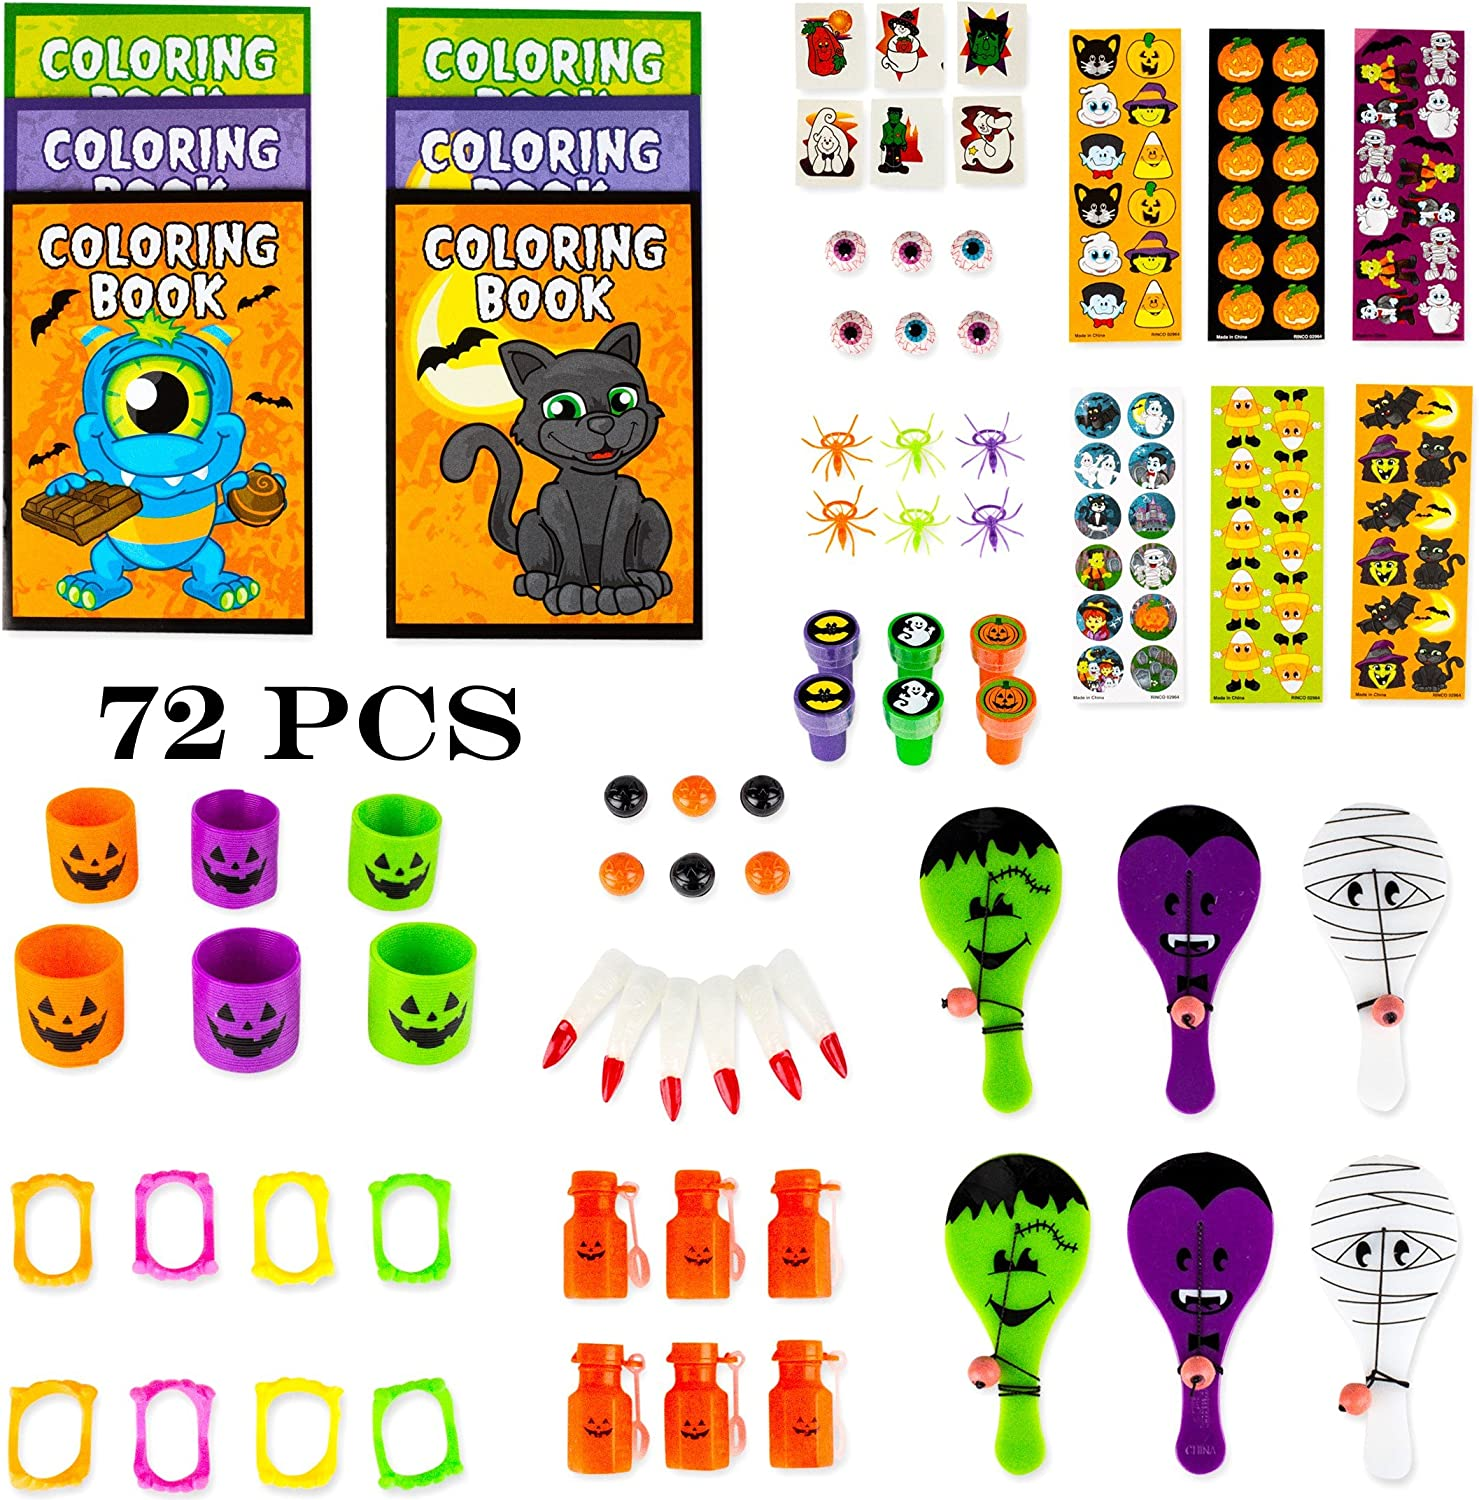 FUN LITTLE TOYS 72 PCs Halloween Party Supplies Toy Assortment Goodie Bags for Kids Trick-or-Treat Bags Prefect Halloween Party Decorations